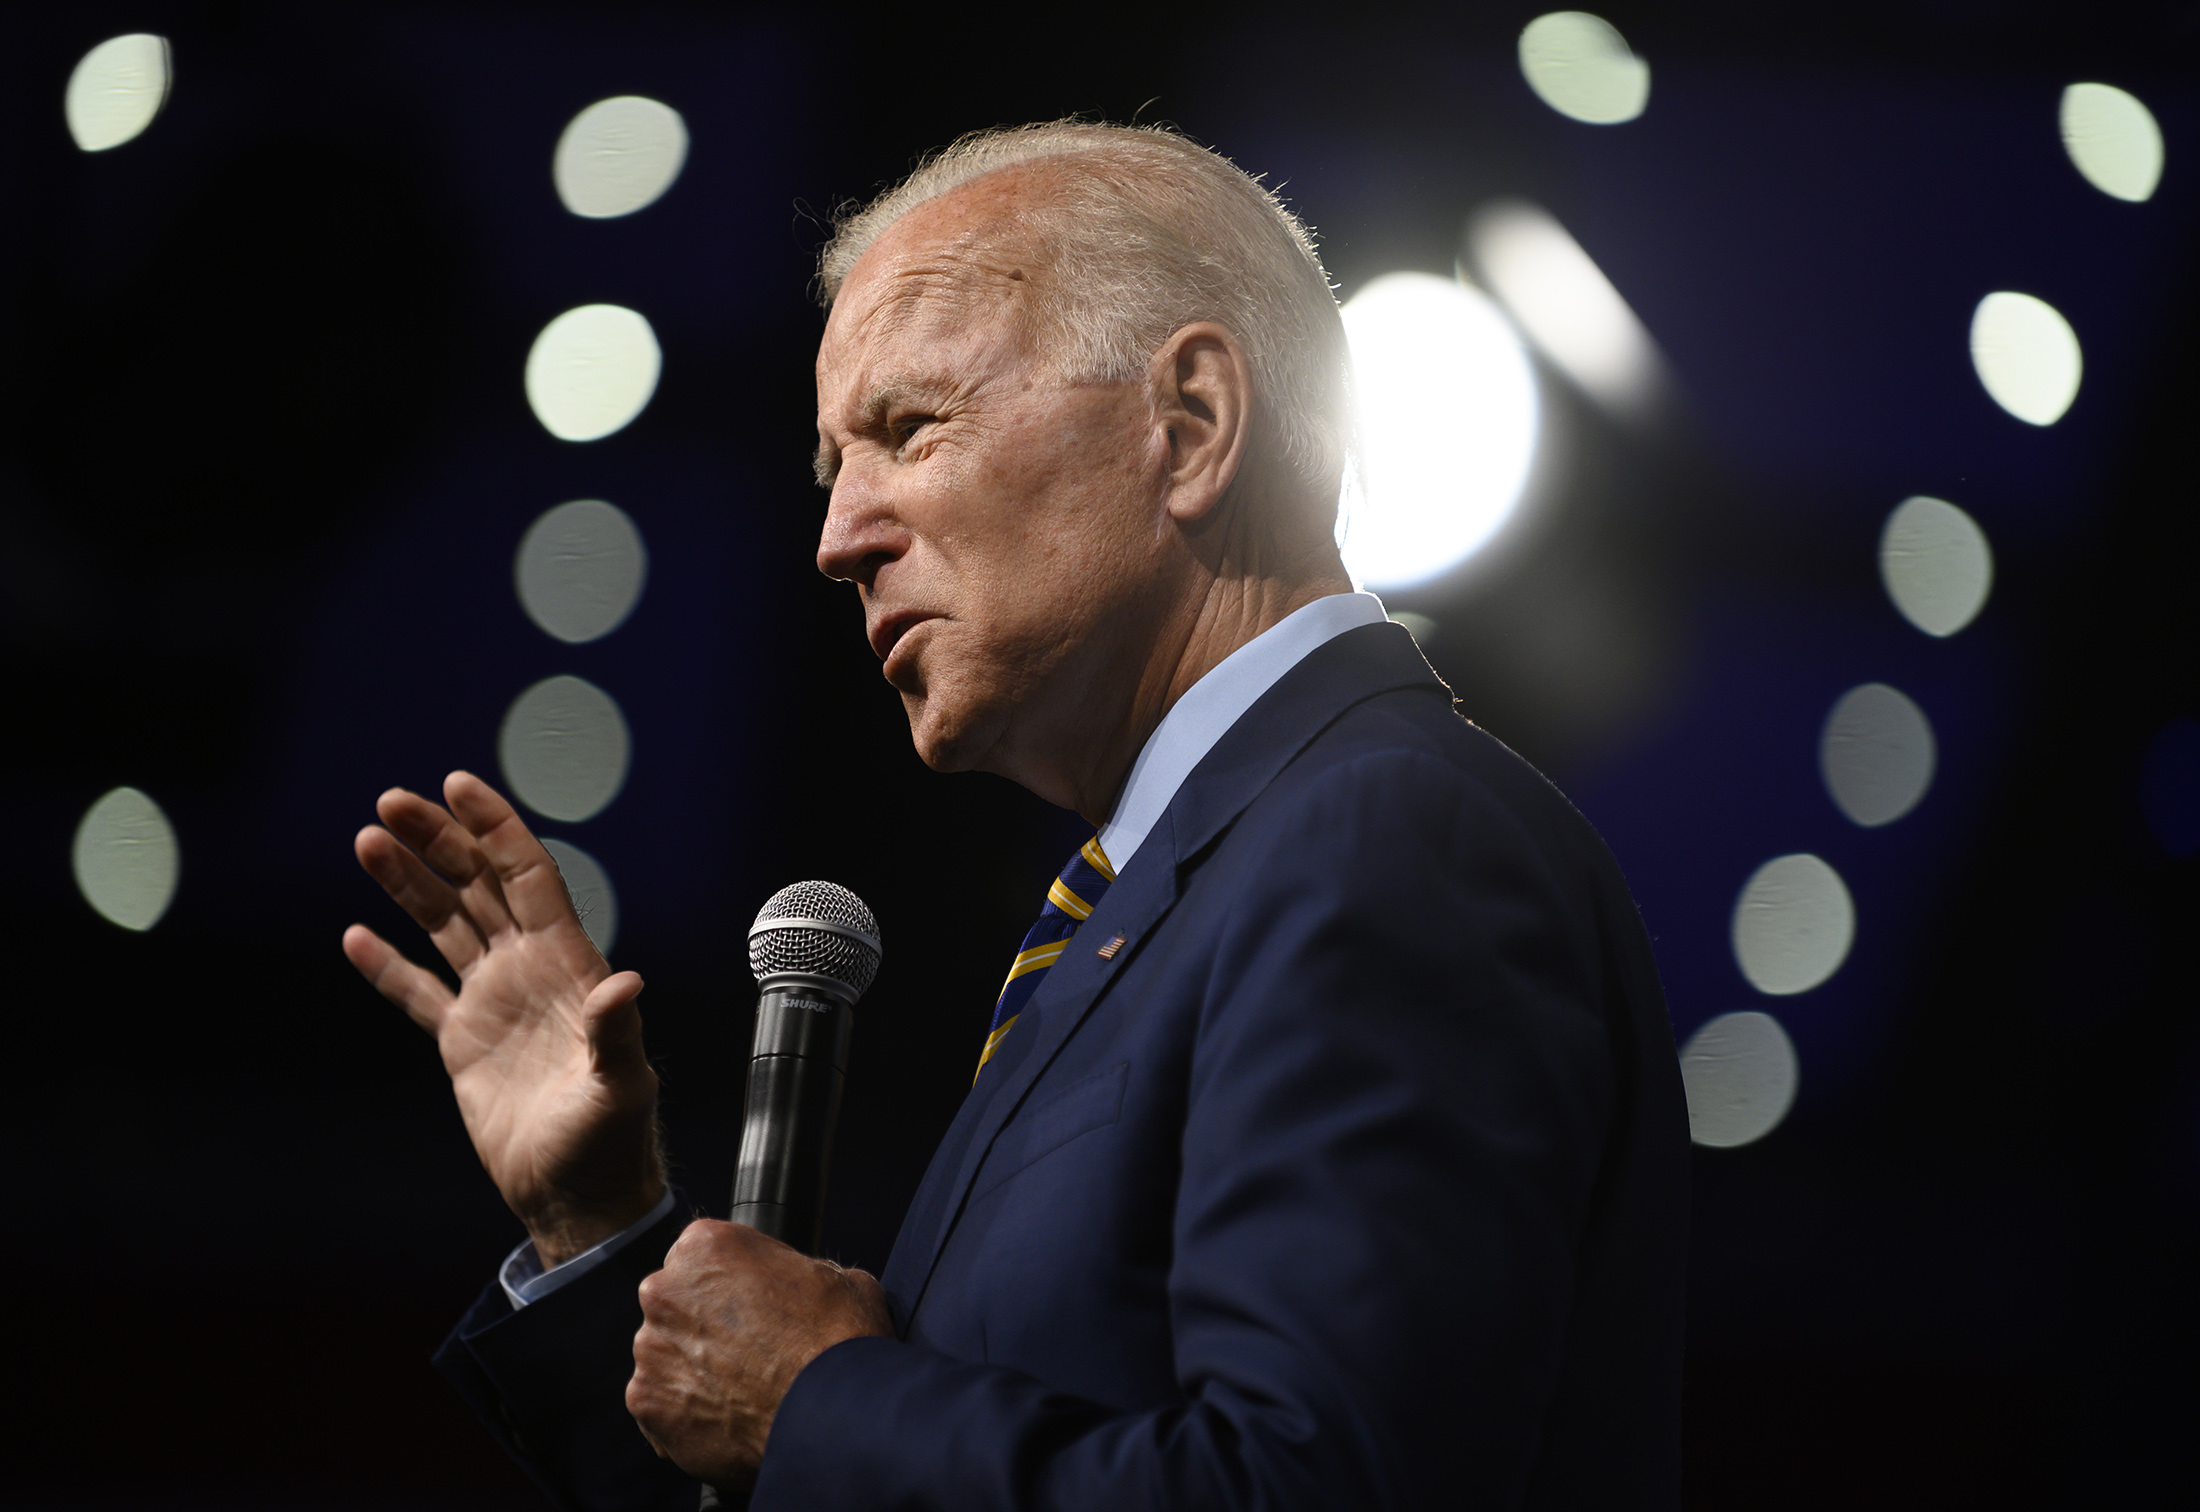 Biden Says He Was Vice President During Parkland Shooting